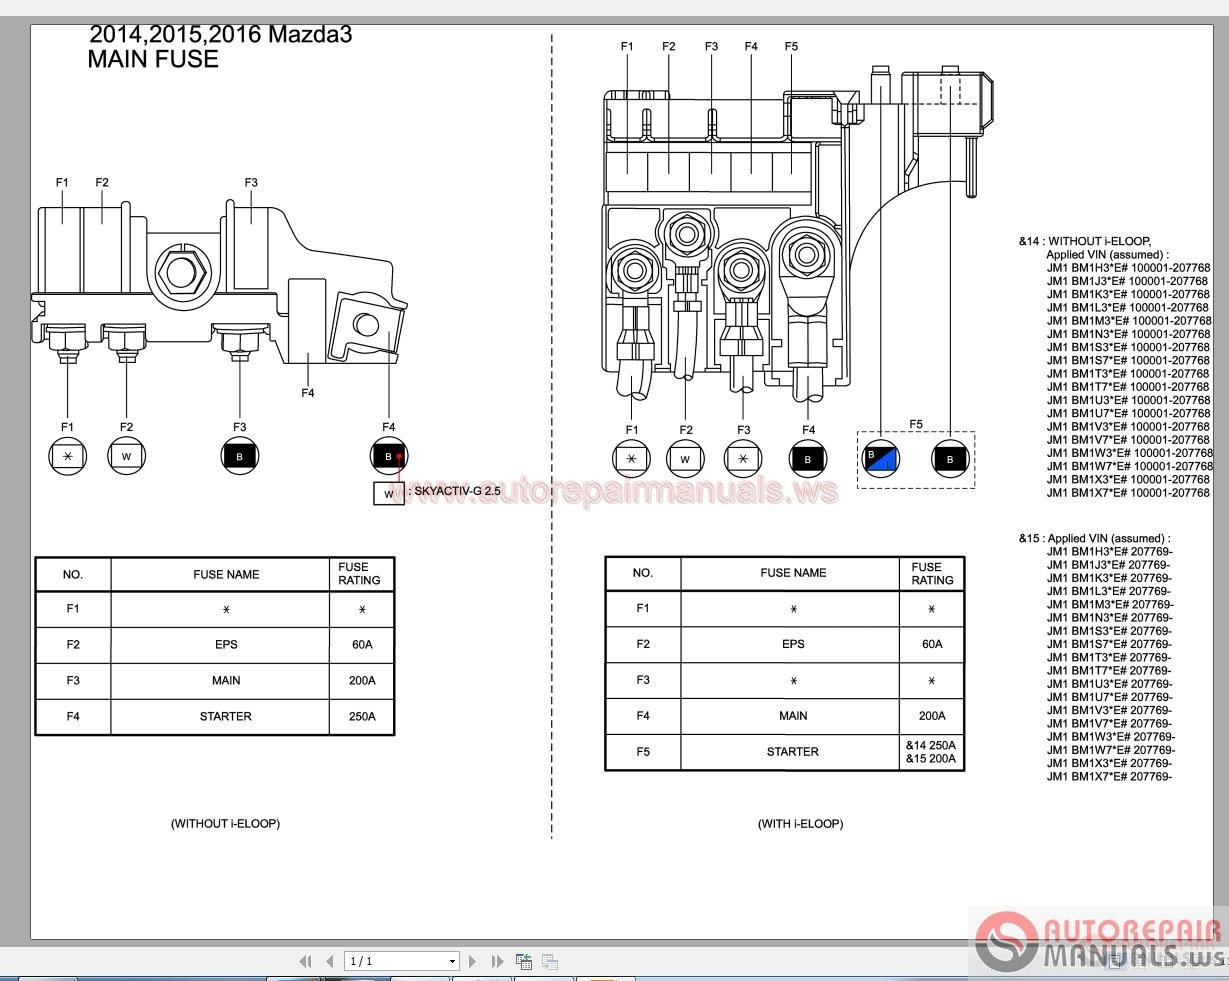 1991 Mazda Rx 7 Engine Diagram Guide And Troubleshooting Of Wiring 1987 B2200 3 2015 2 4l Diagrams Auto Repair Manual Forum Heavy Equipment Forums Download 2003 6 B2000